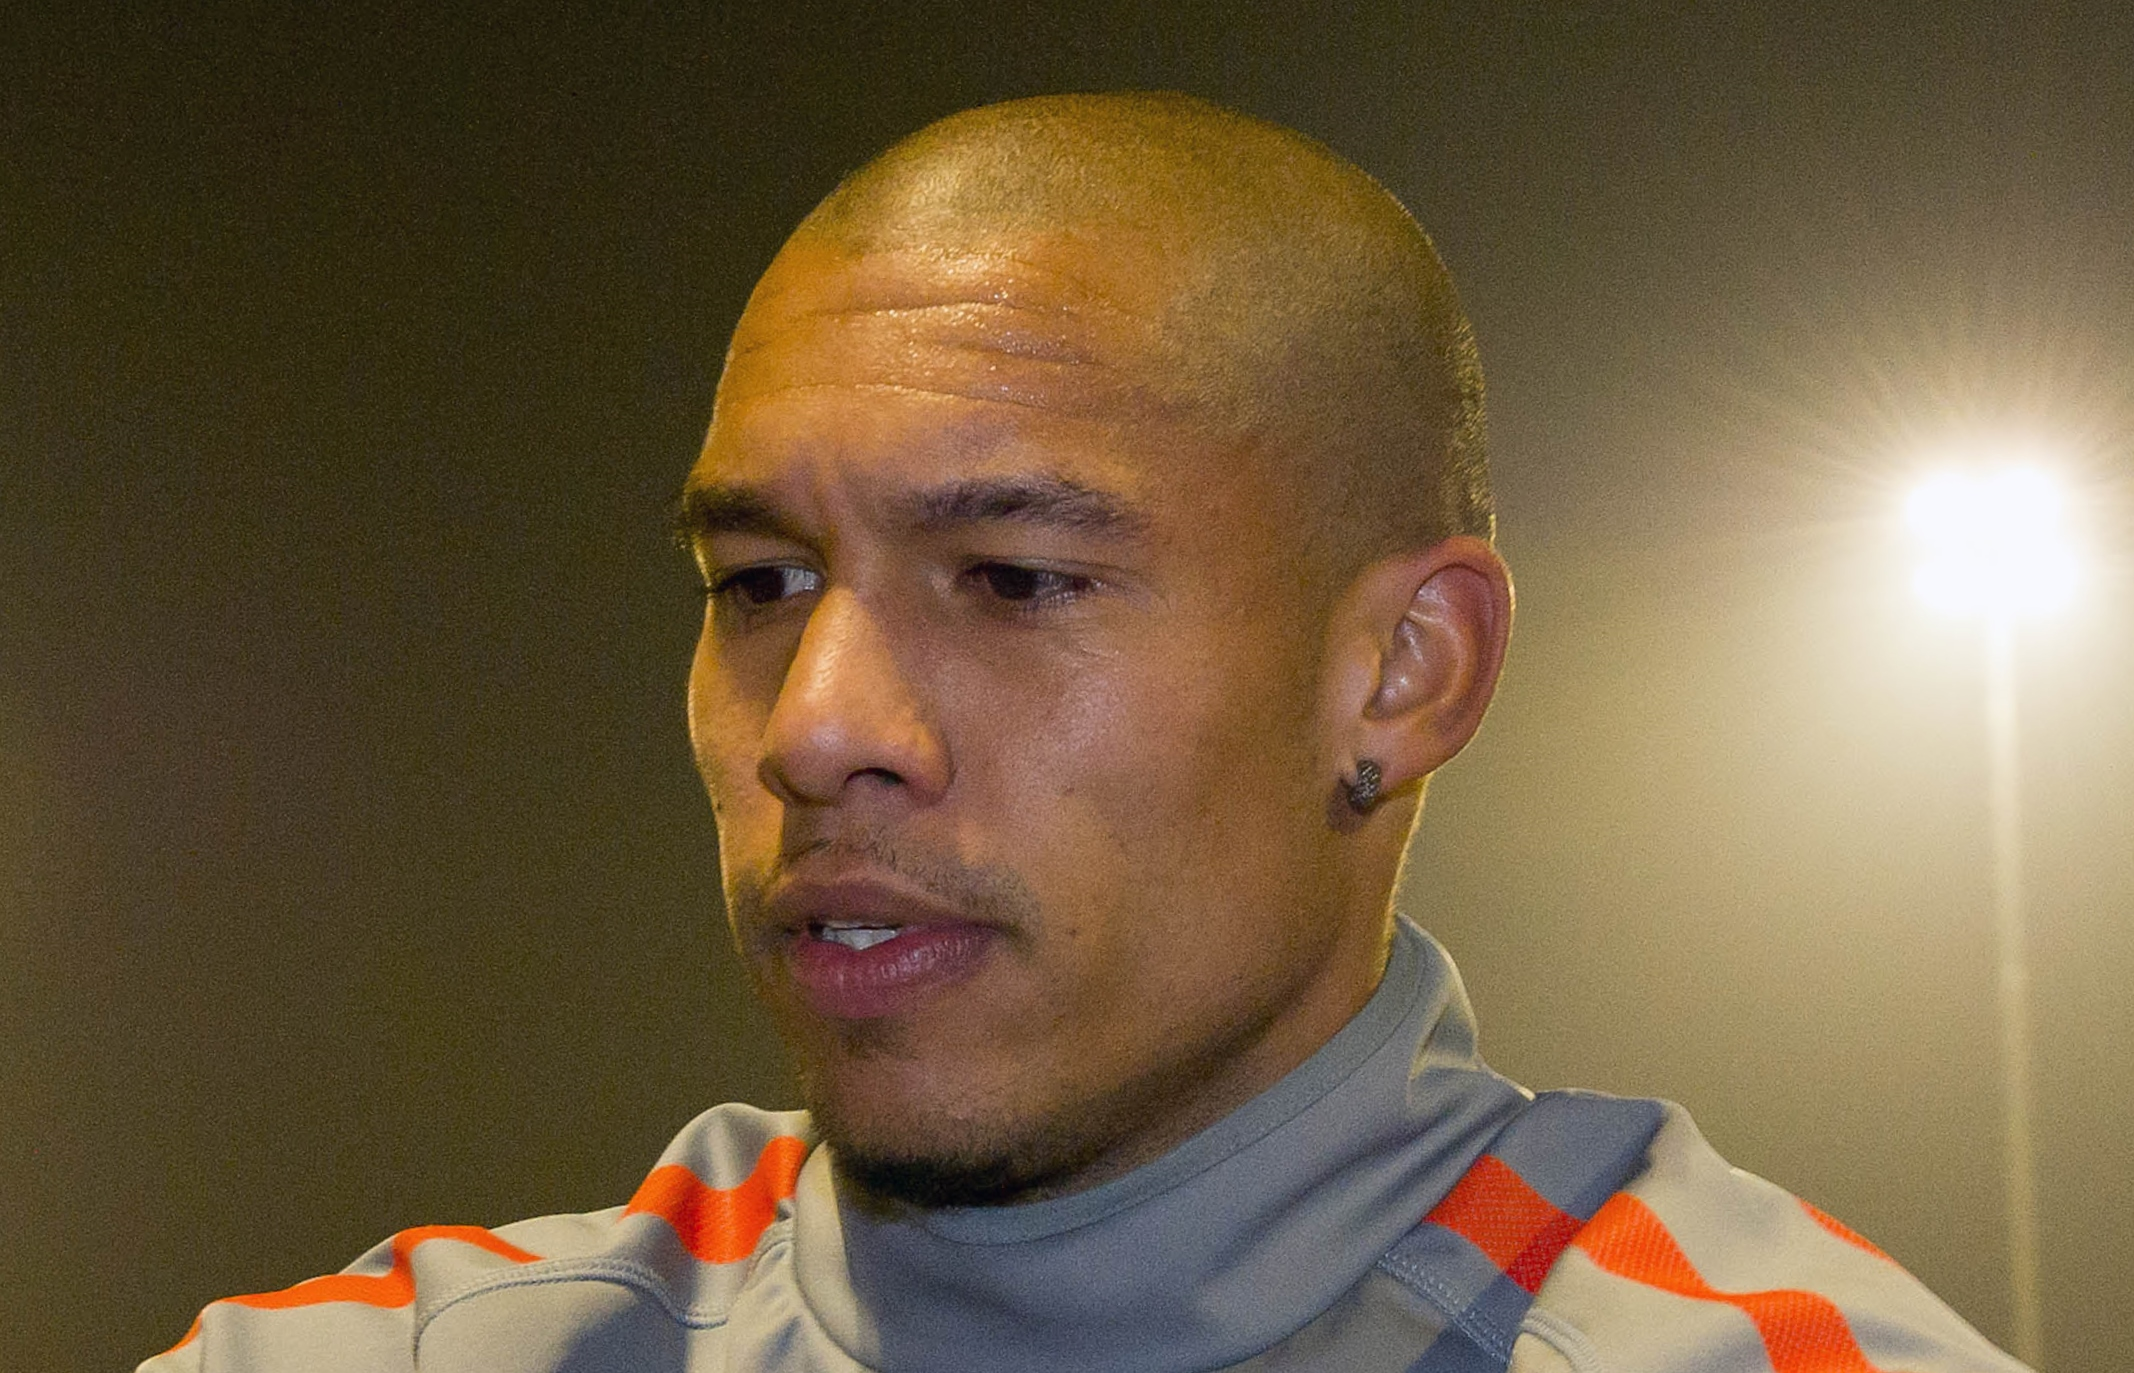 The 33-year old son of father Jerry de Jong and mother Marja Woldberg Nigel de Jong in 2018 photo. Nigel de Jong earned a 3 million dollar salary - leaving the net worth at 17 million in 2018